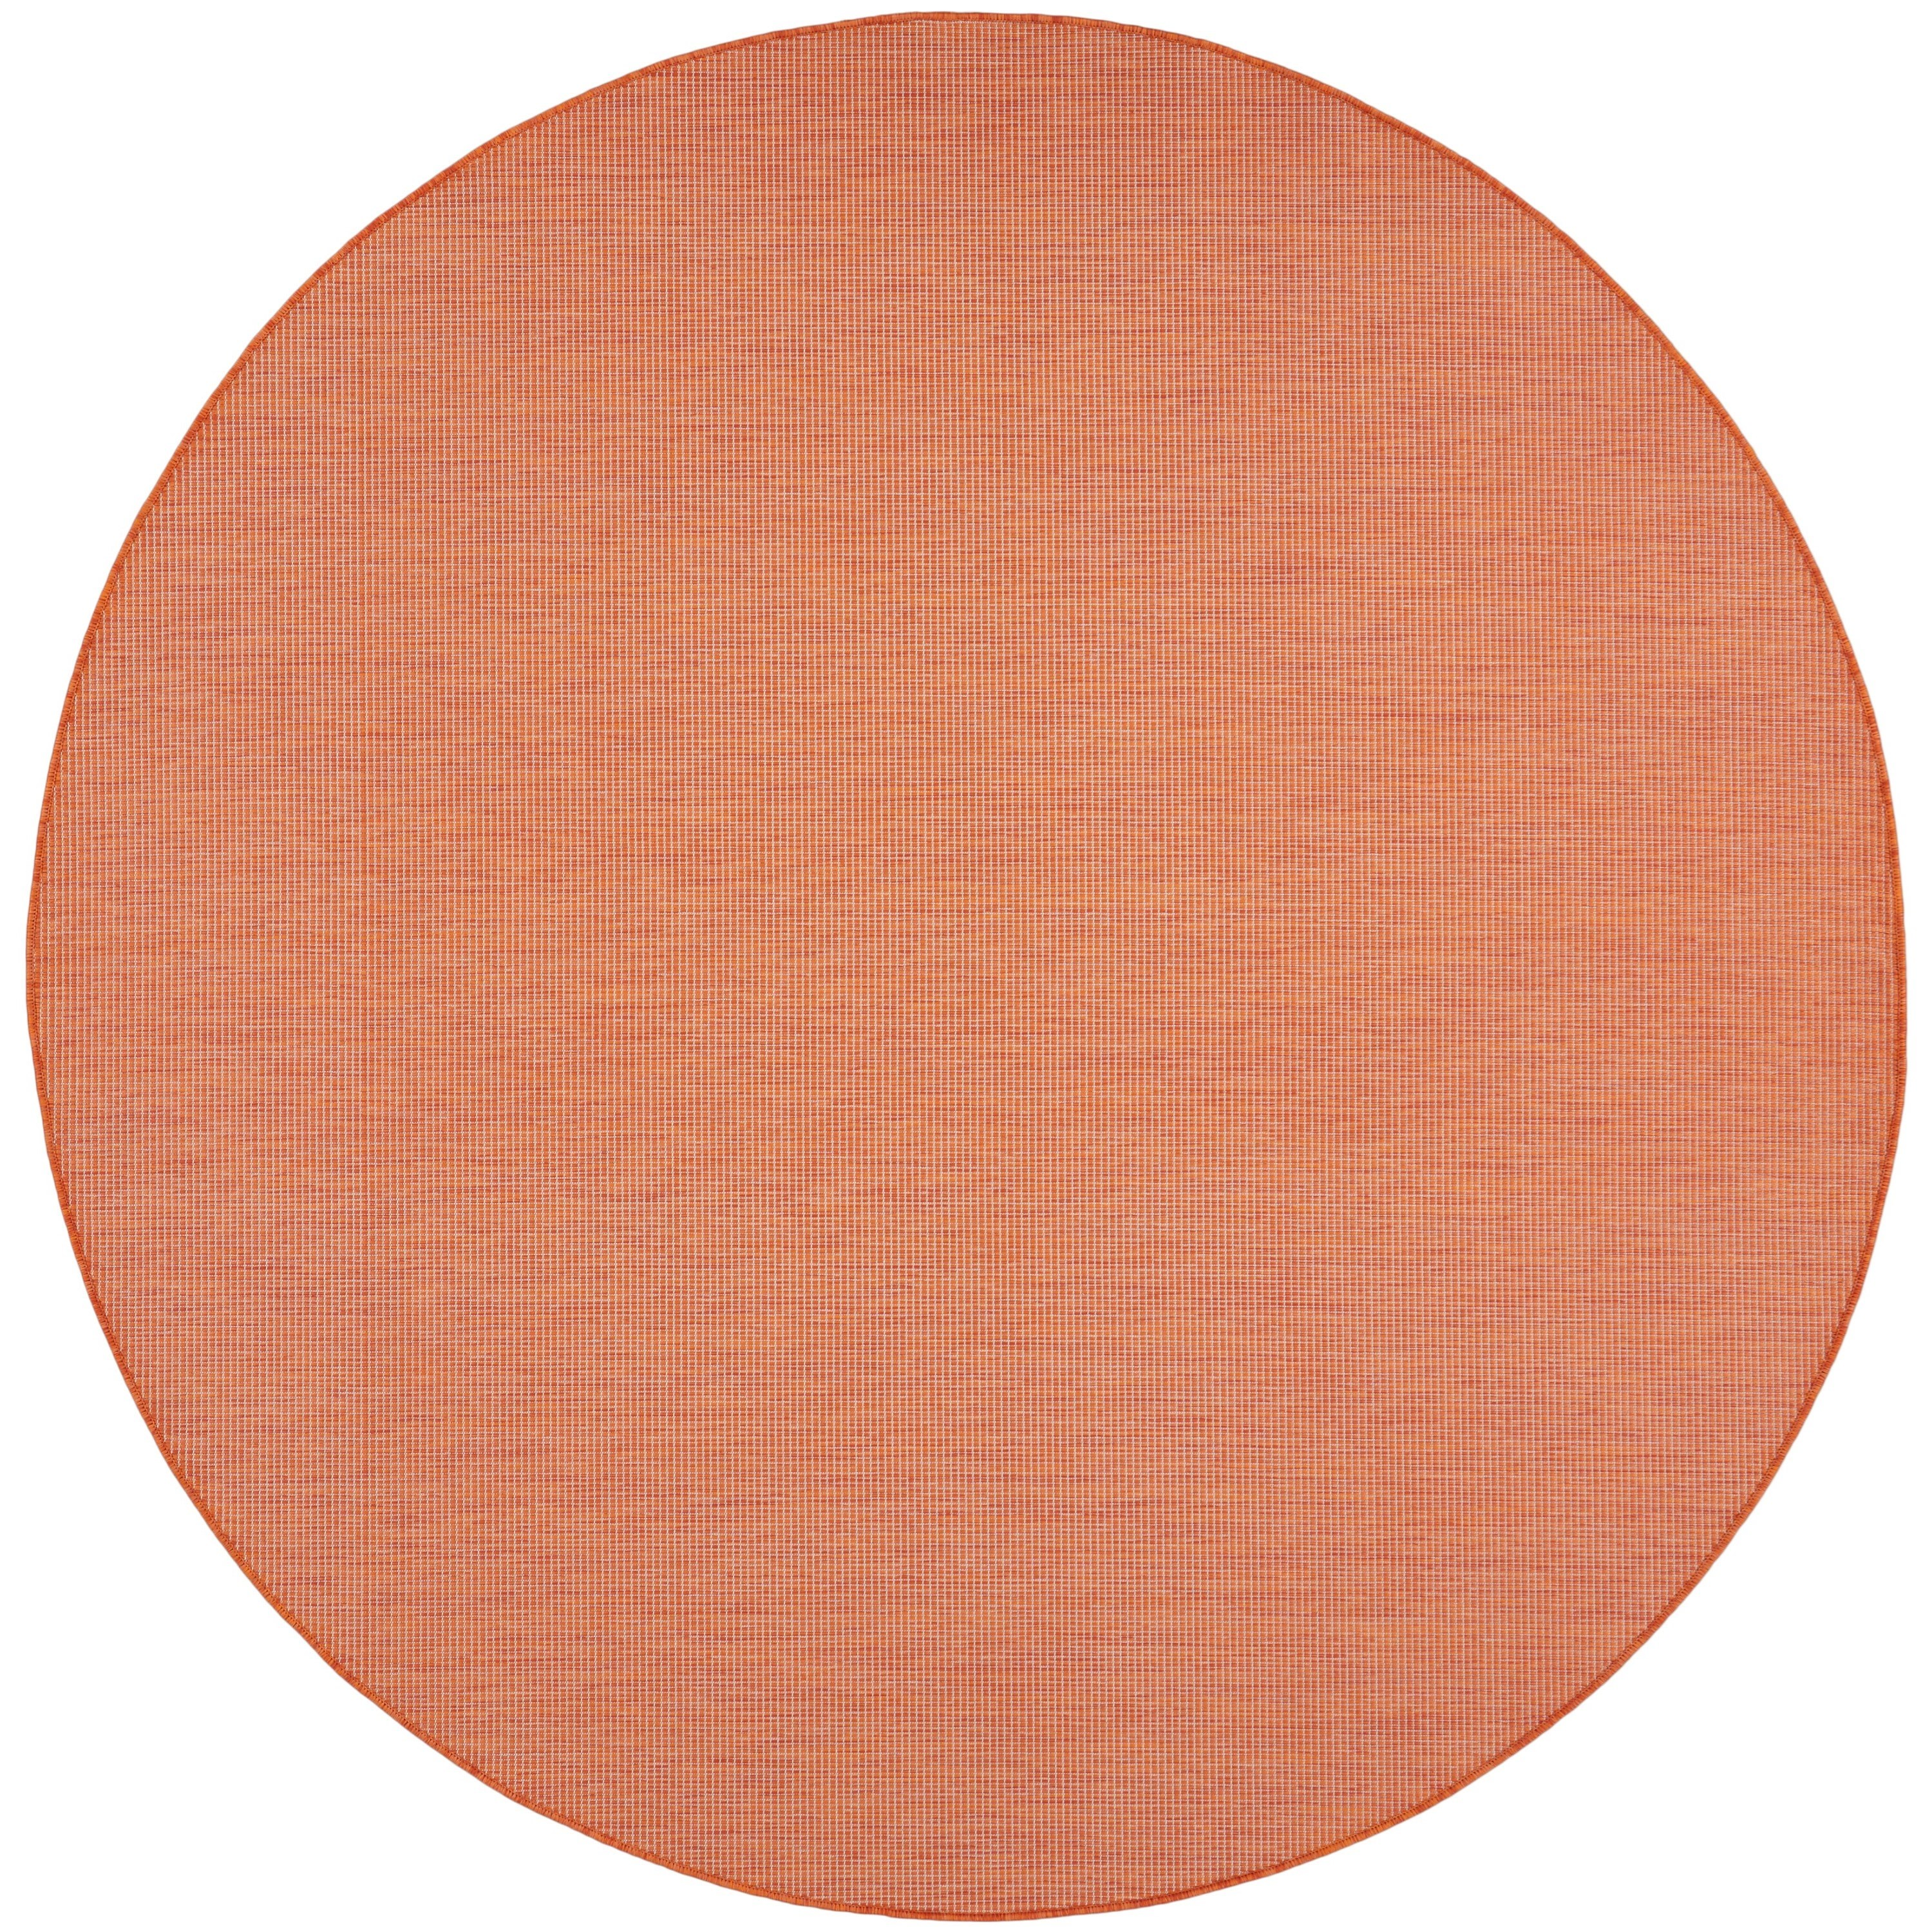 Positano 2020 8' Round Rug by Nourison at Home Collections Furniture